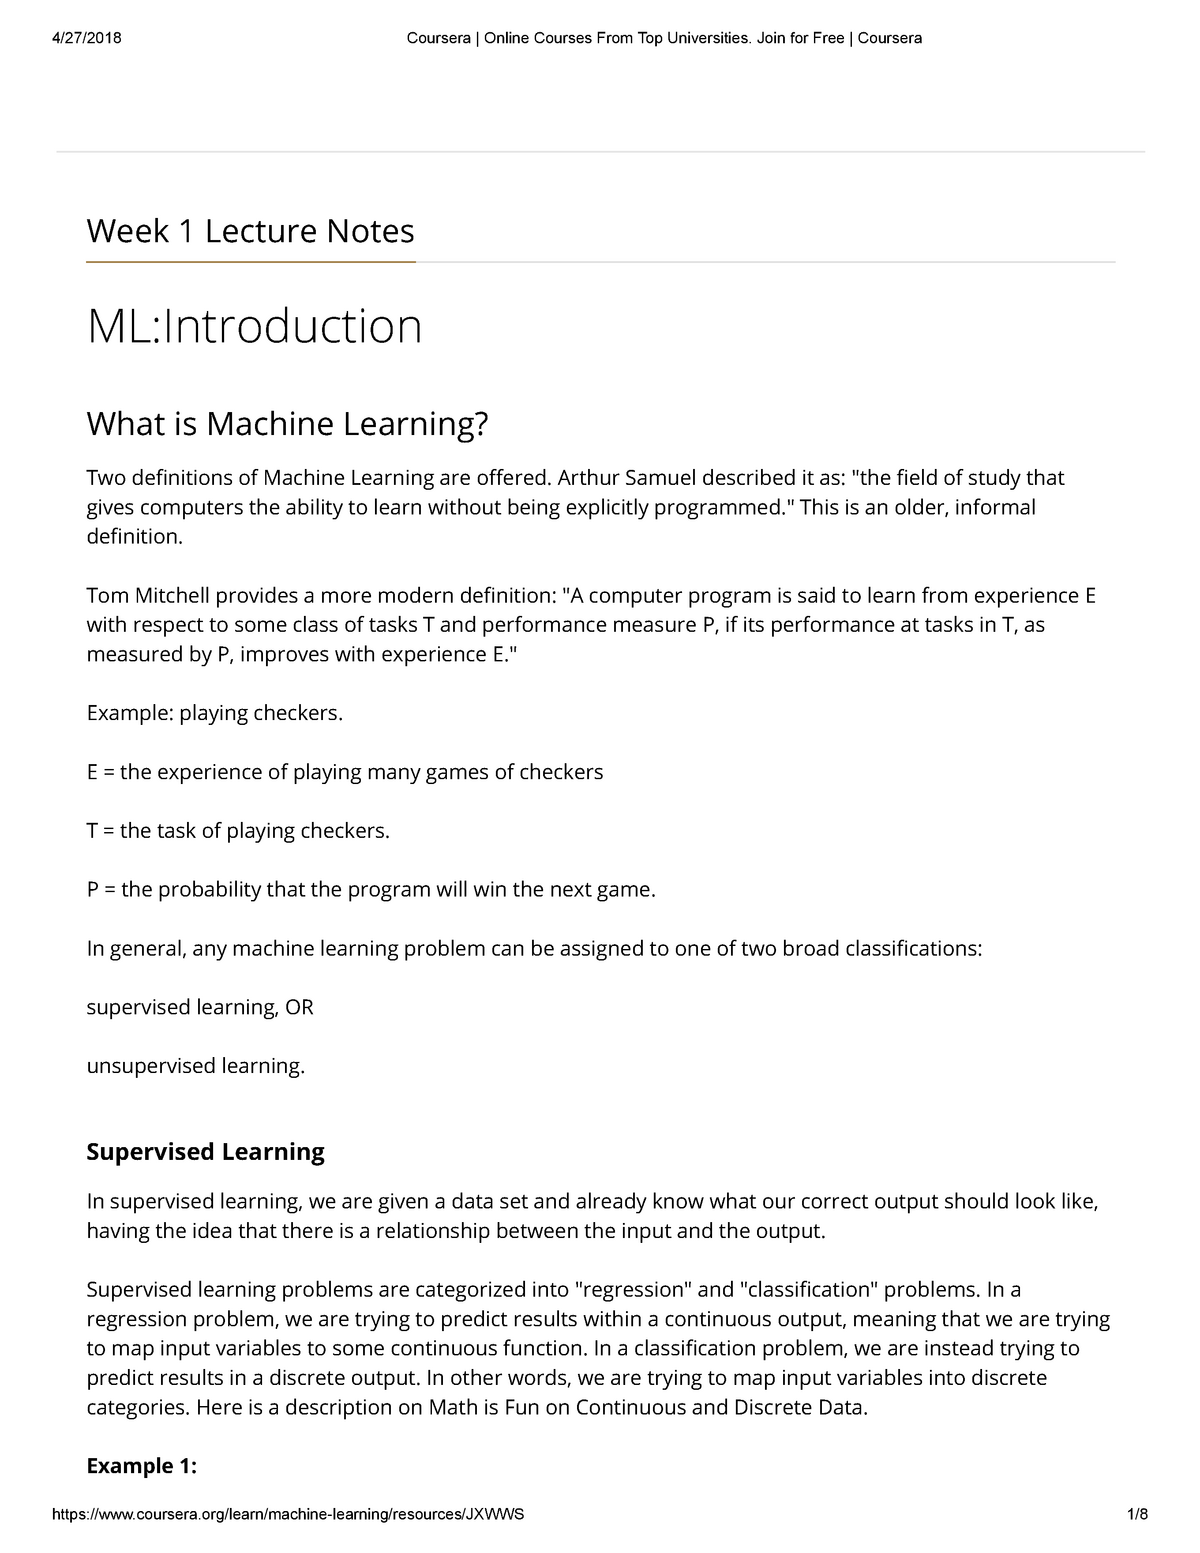 Week 1 Lecture Notes - CS 229: Machine Learning - StuDocu